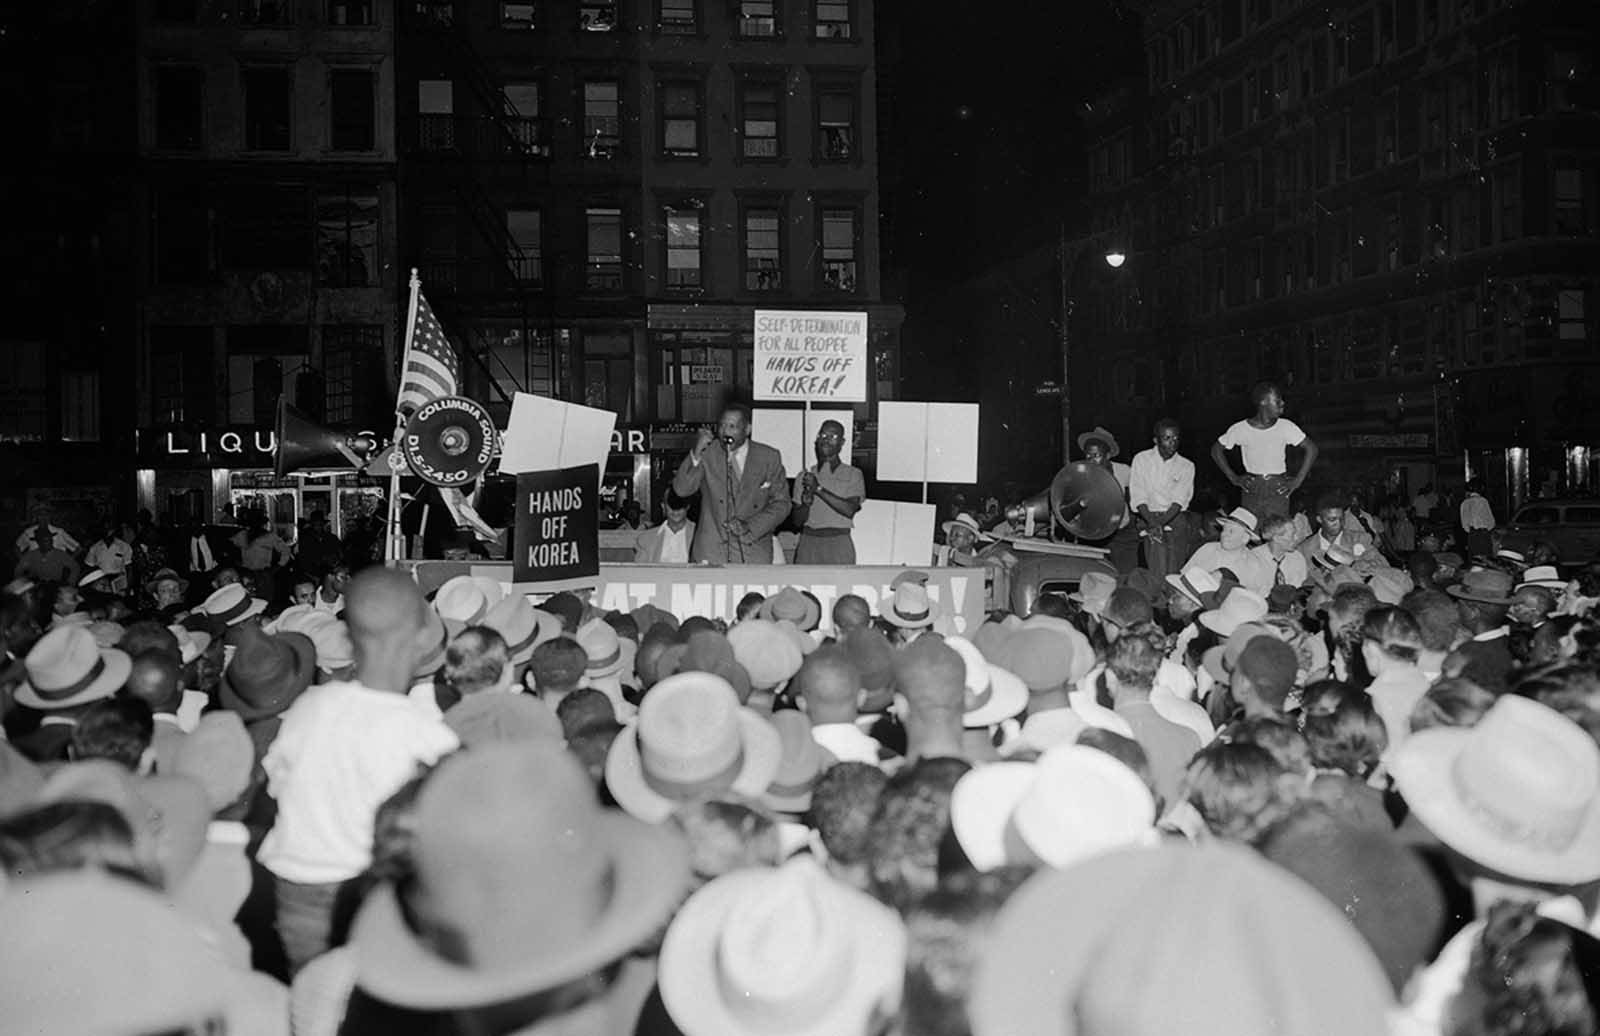 """Singer Paul Robeson addresses a """"Hands Off Korea"""" rally from a sound truck at the corner of 126th Street and Lenox Avenue in the Harlem section of New York, on July 3, 1950."""